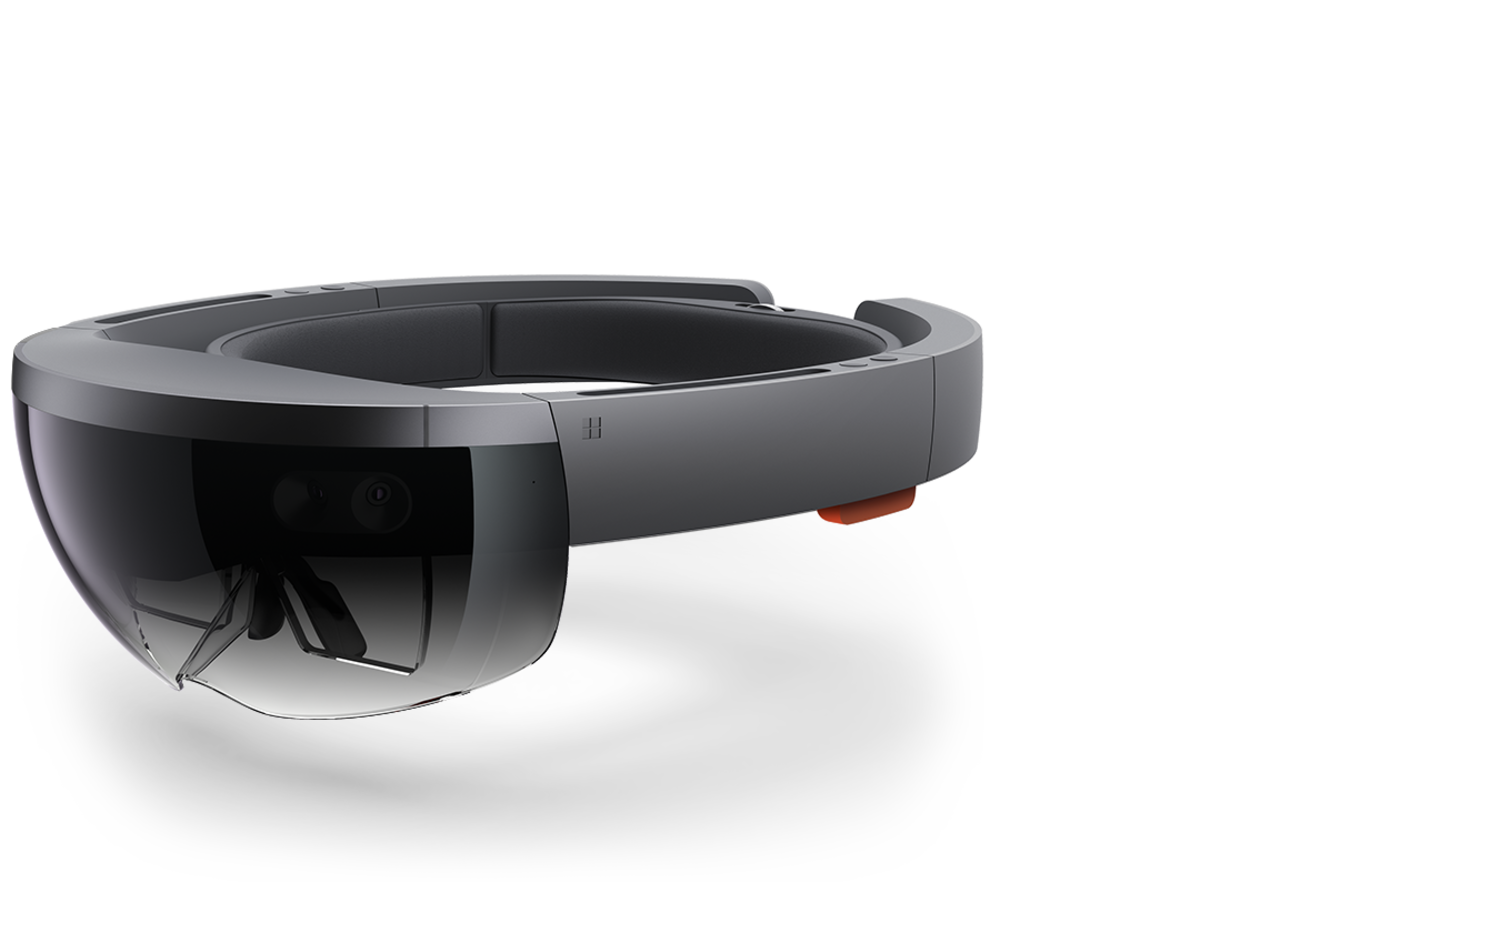 7 Reasons Why Microsoft's HoloLens Is A Game Changer